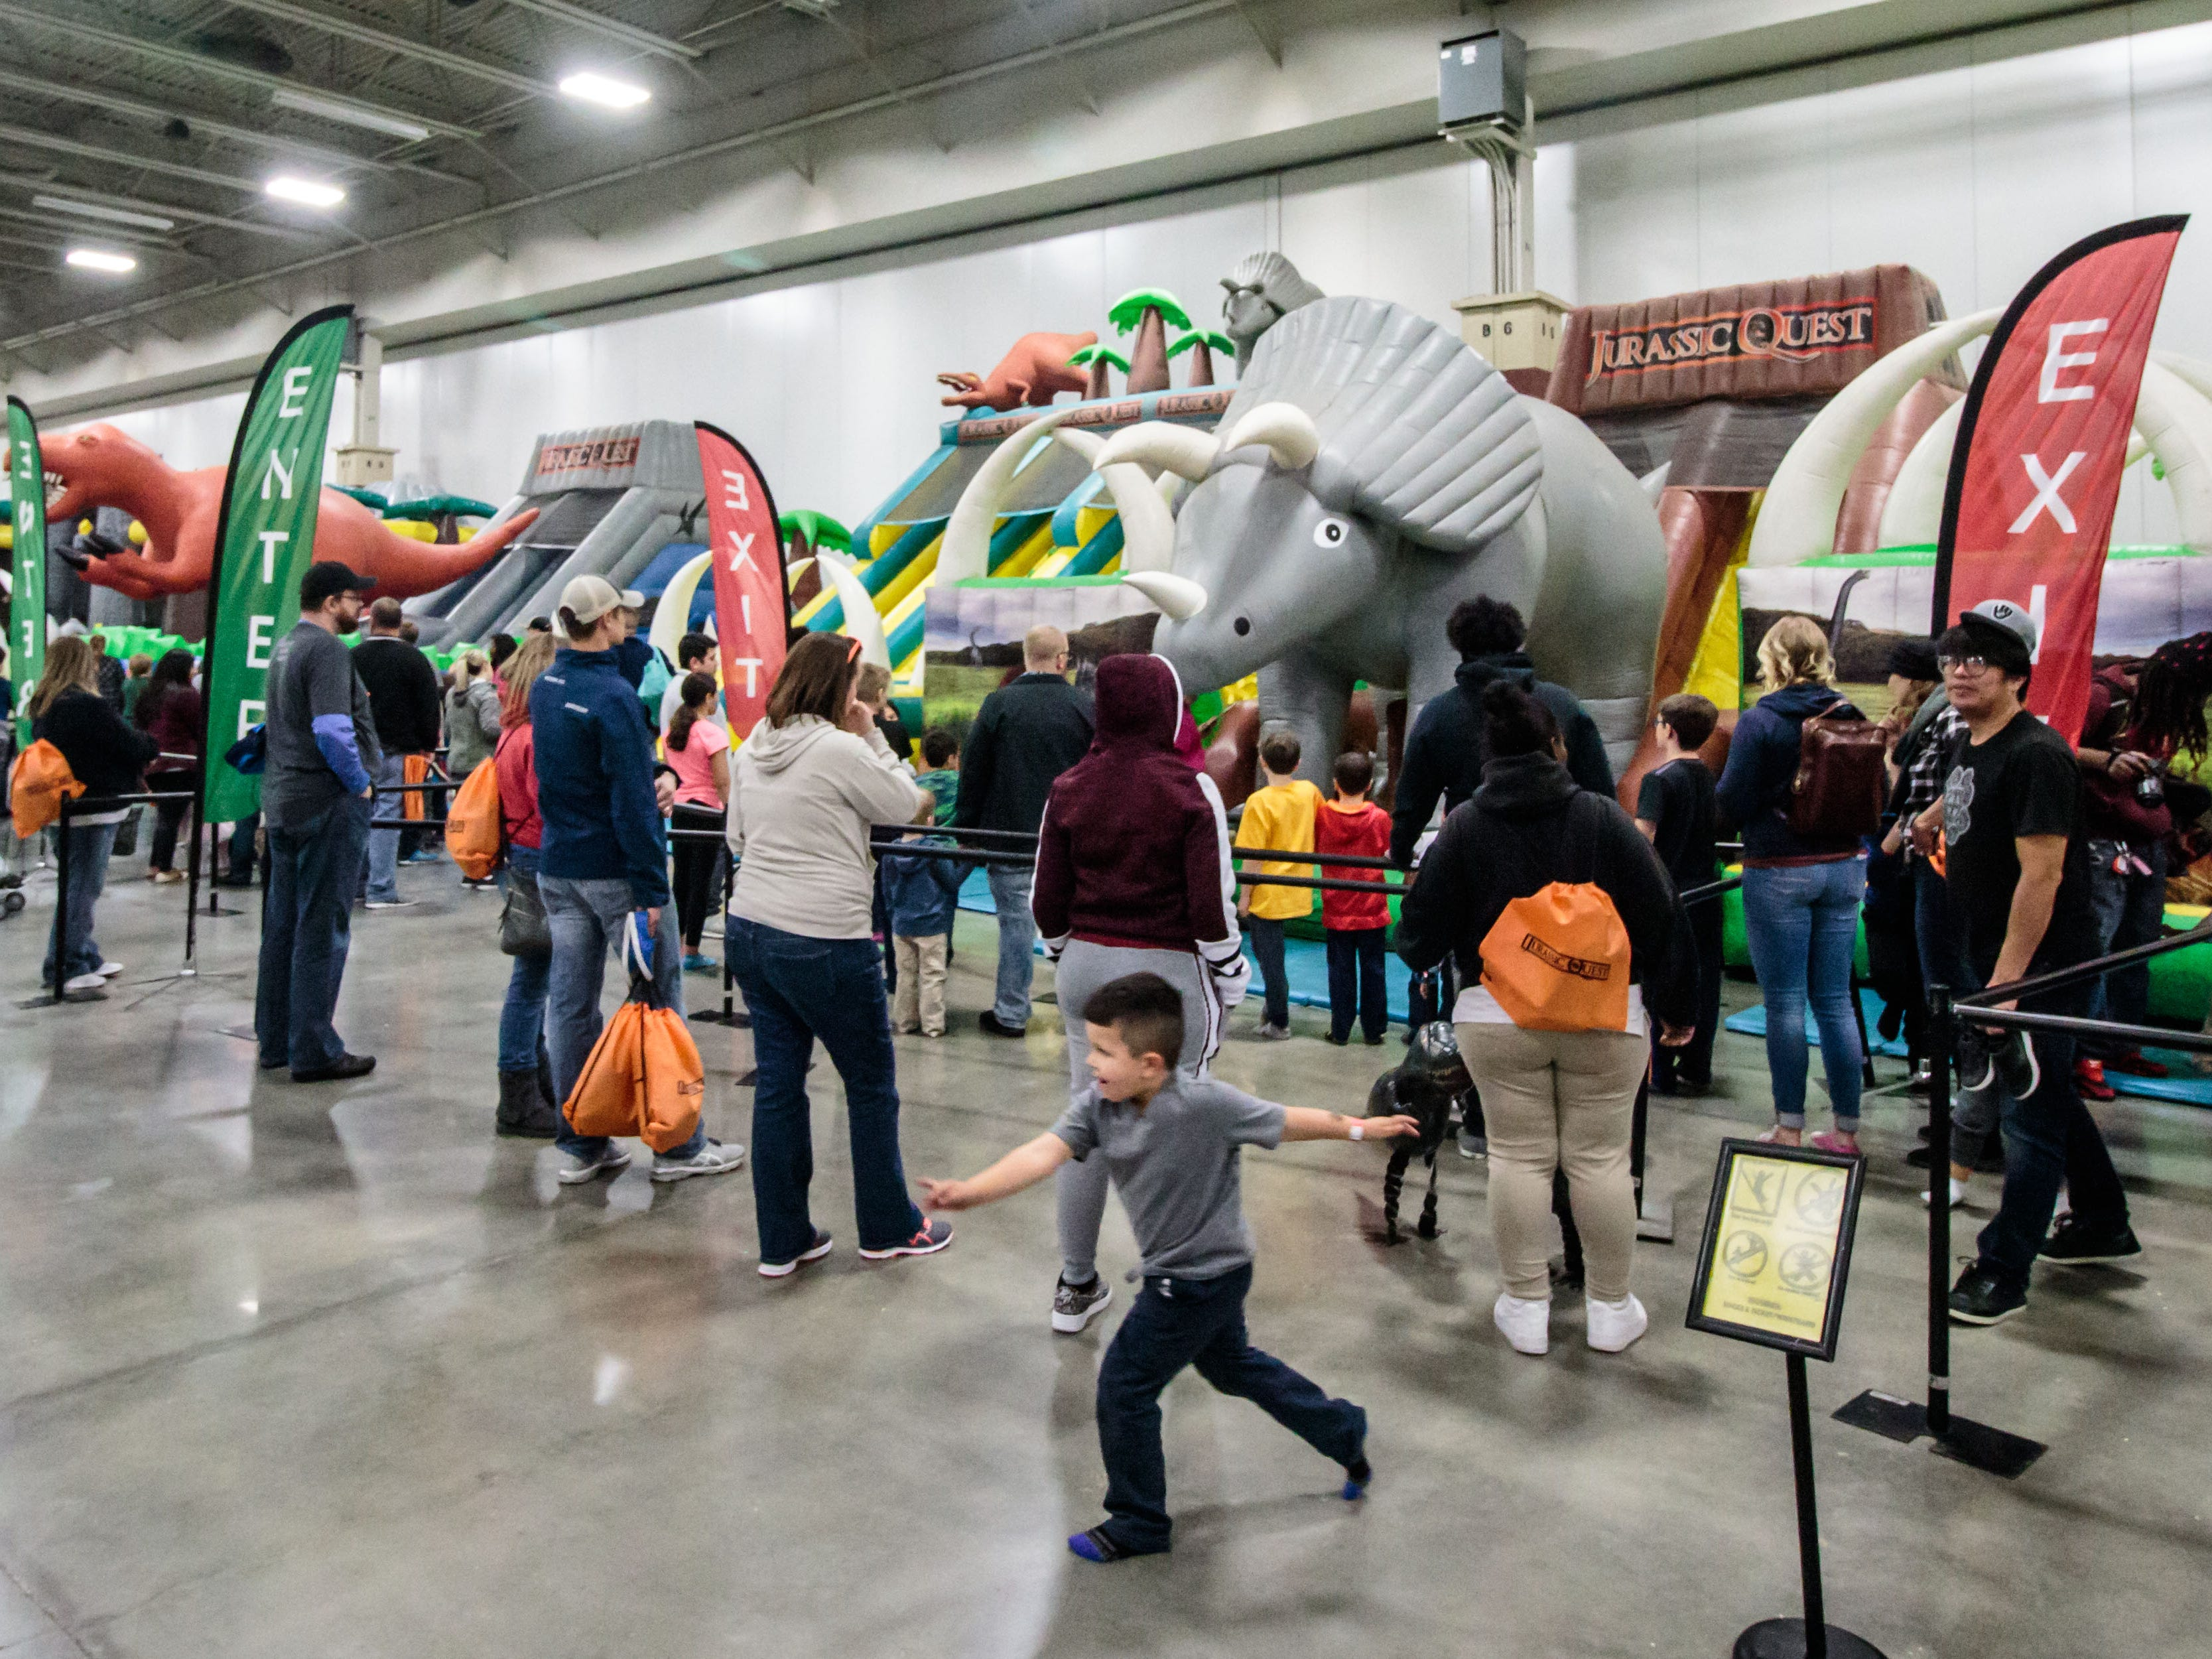 Youngsters enjoy a variety of bounce houses during Jurassic Quest at Wisconsin State Fair Park in West Allis on Sunday, Oct. 21, 2018. The three-day event featured more than 80 life-sized animatronic dinosaurs, fossils, games, crafts, bounce houses and more.